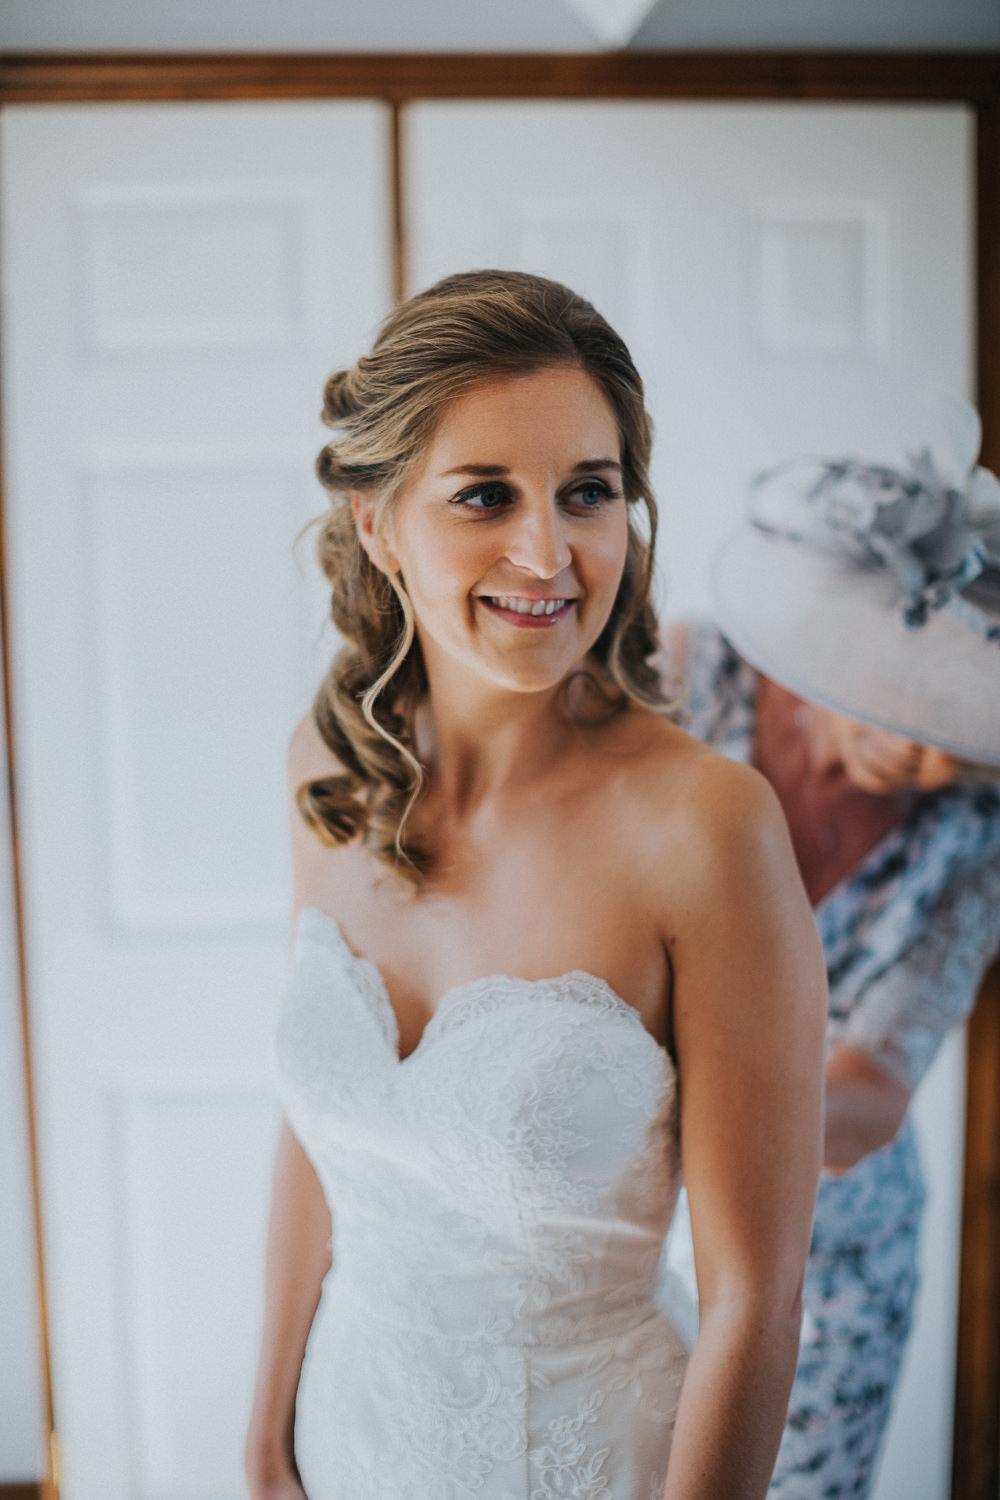 Bride Bridal Half Up Curled Hair Loseley Park Wedding Kit Myers Photography